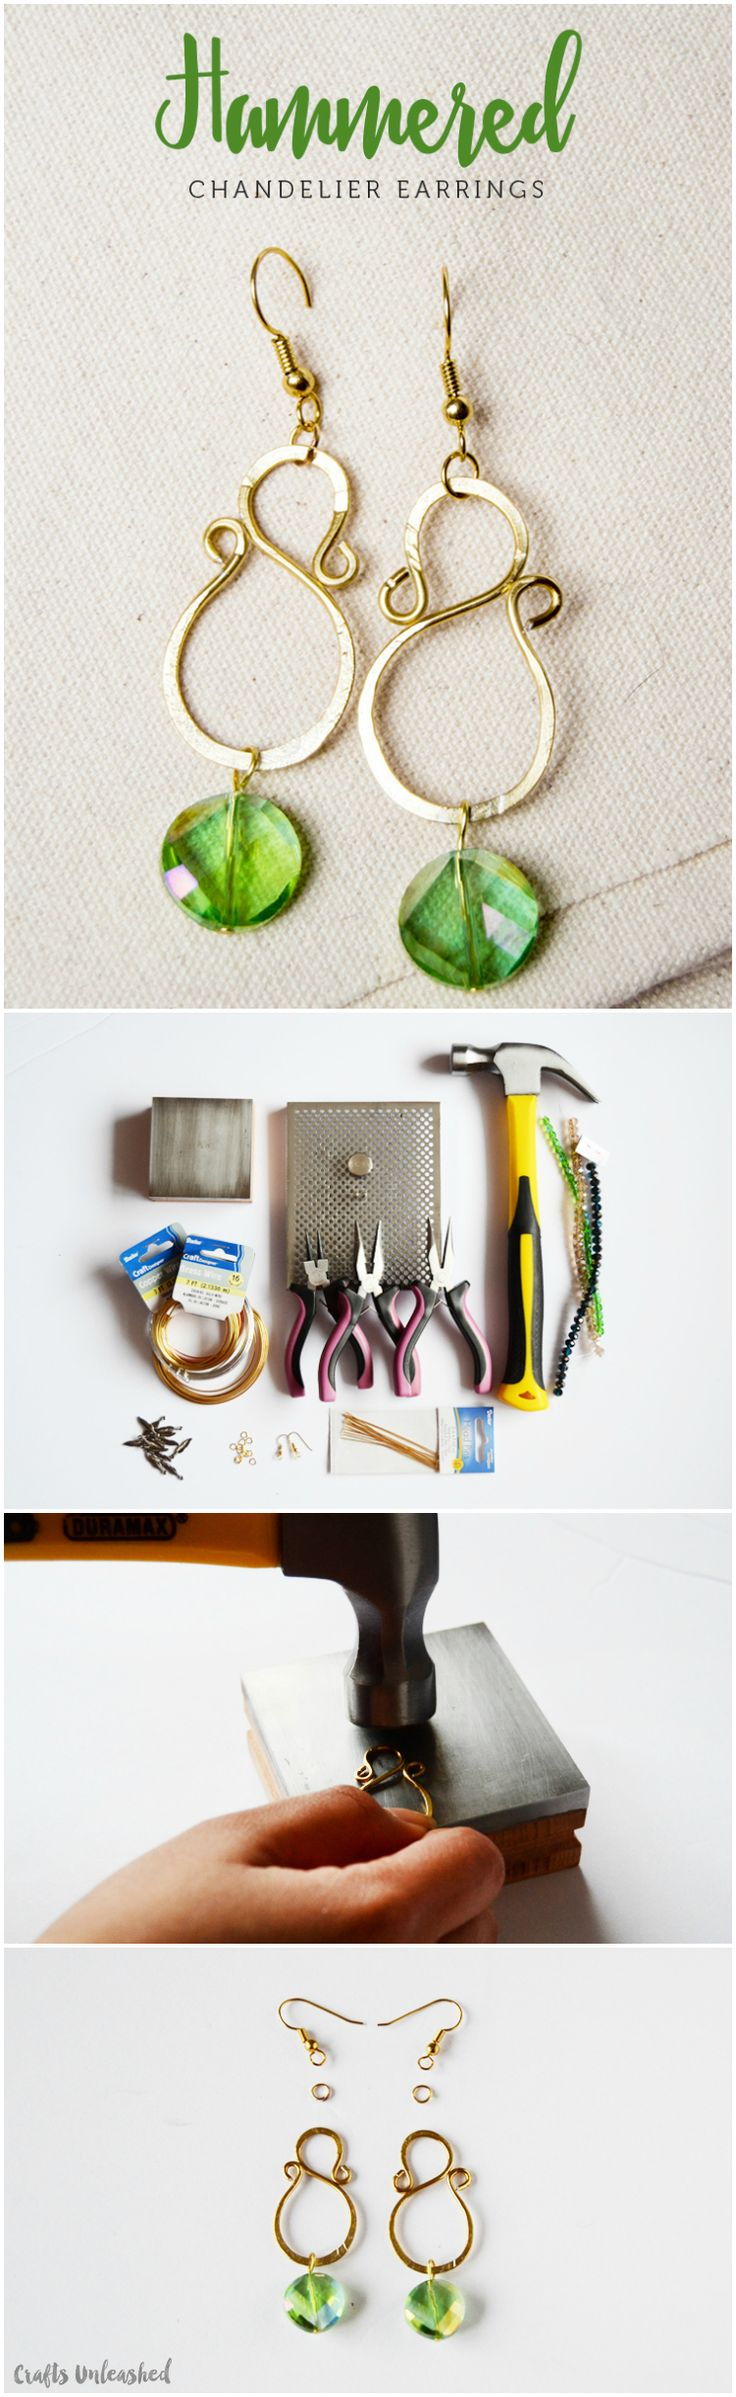 Diy Chandelier Earrings With Hammered Texture